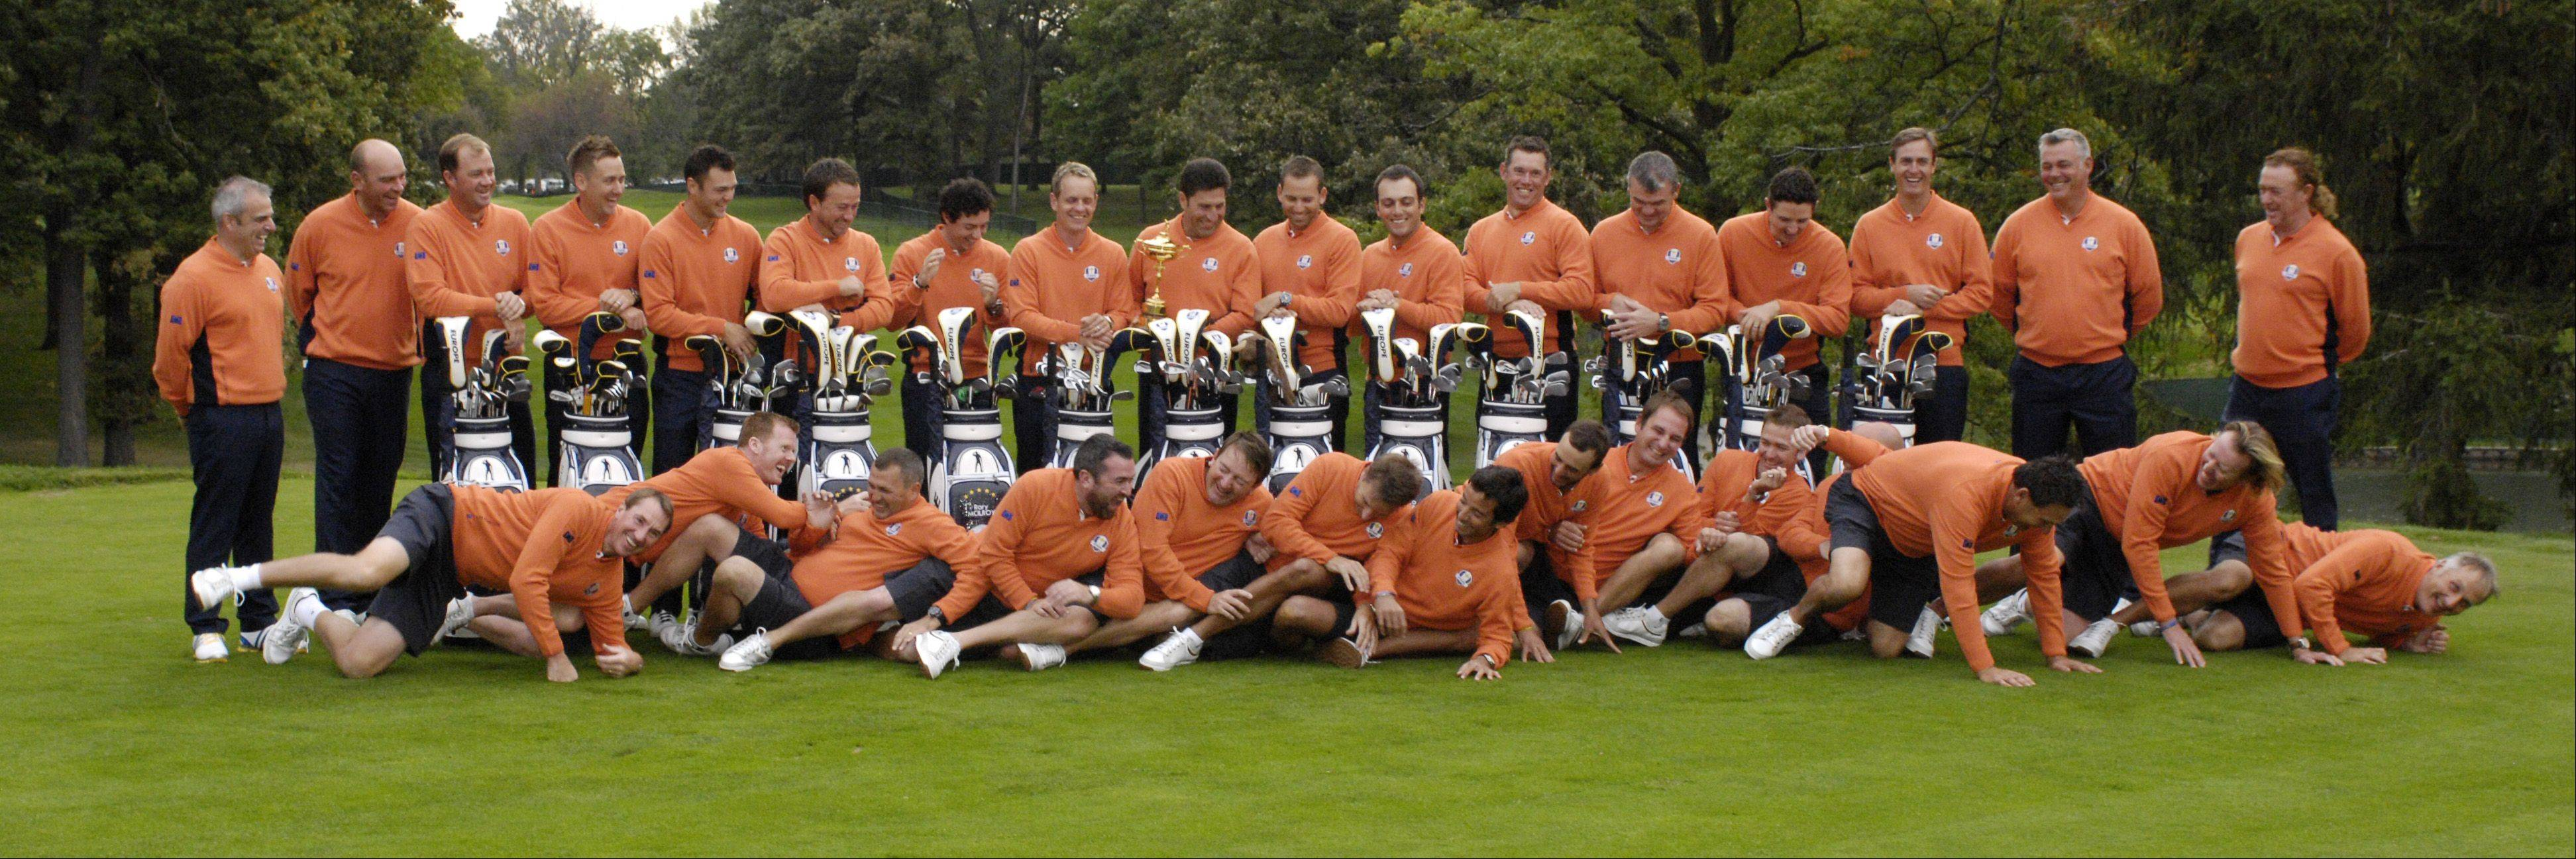 The European Ryder Cup team caddies goof around during a team portrait.